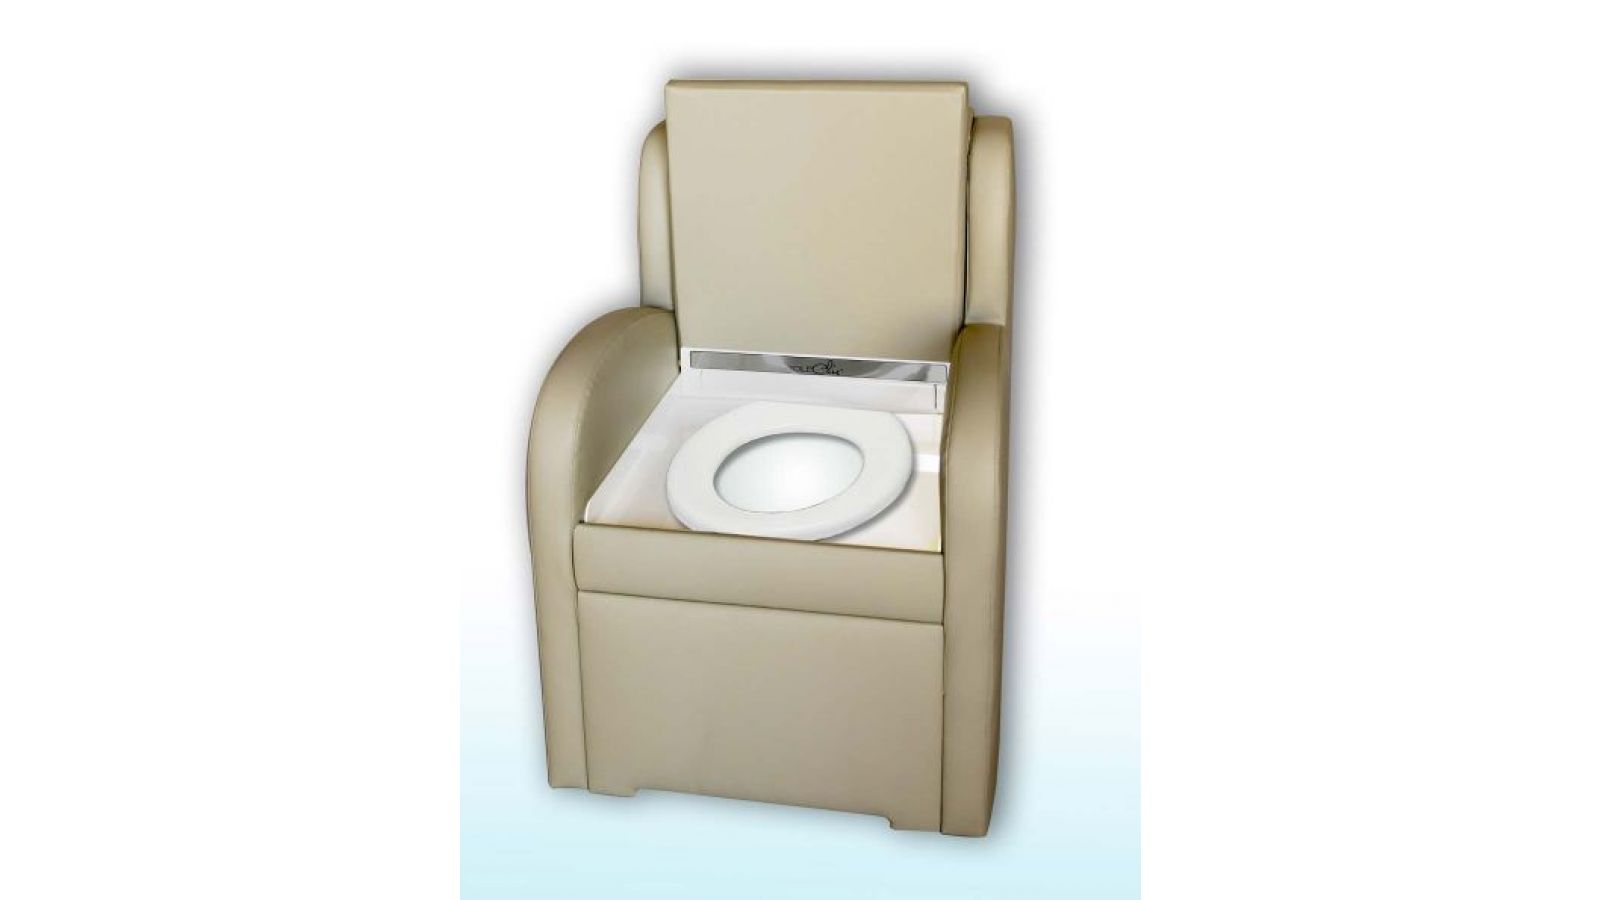 The Modern, Chic Toilet for the 21st Century